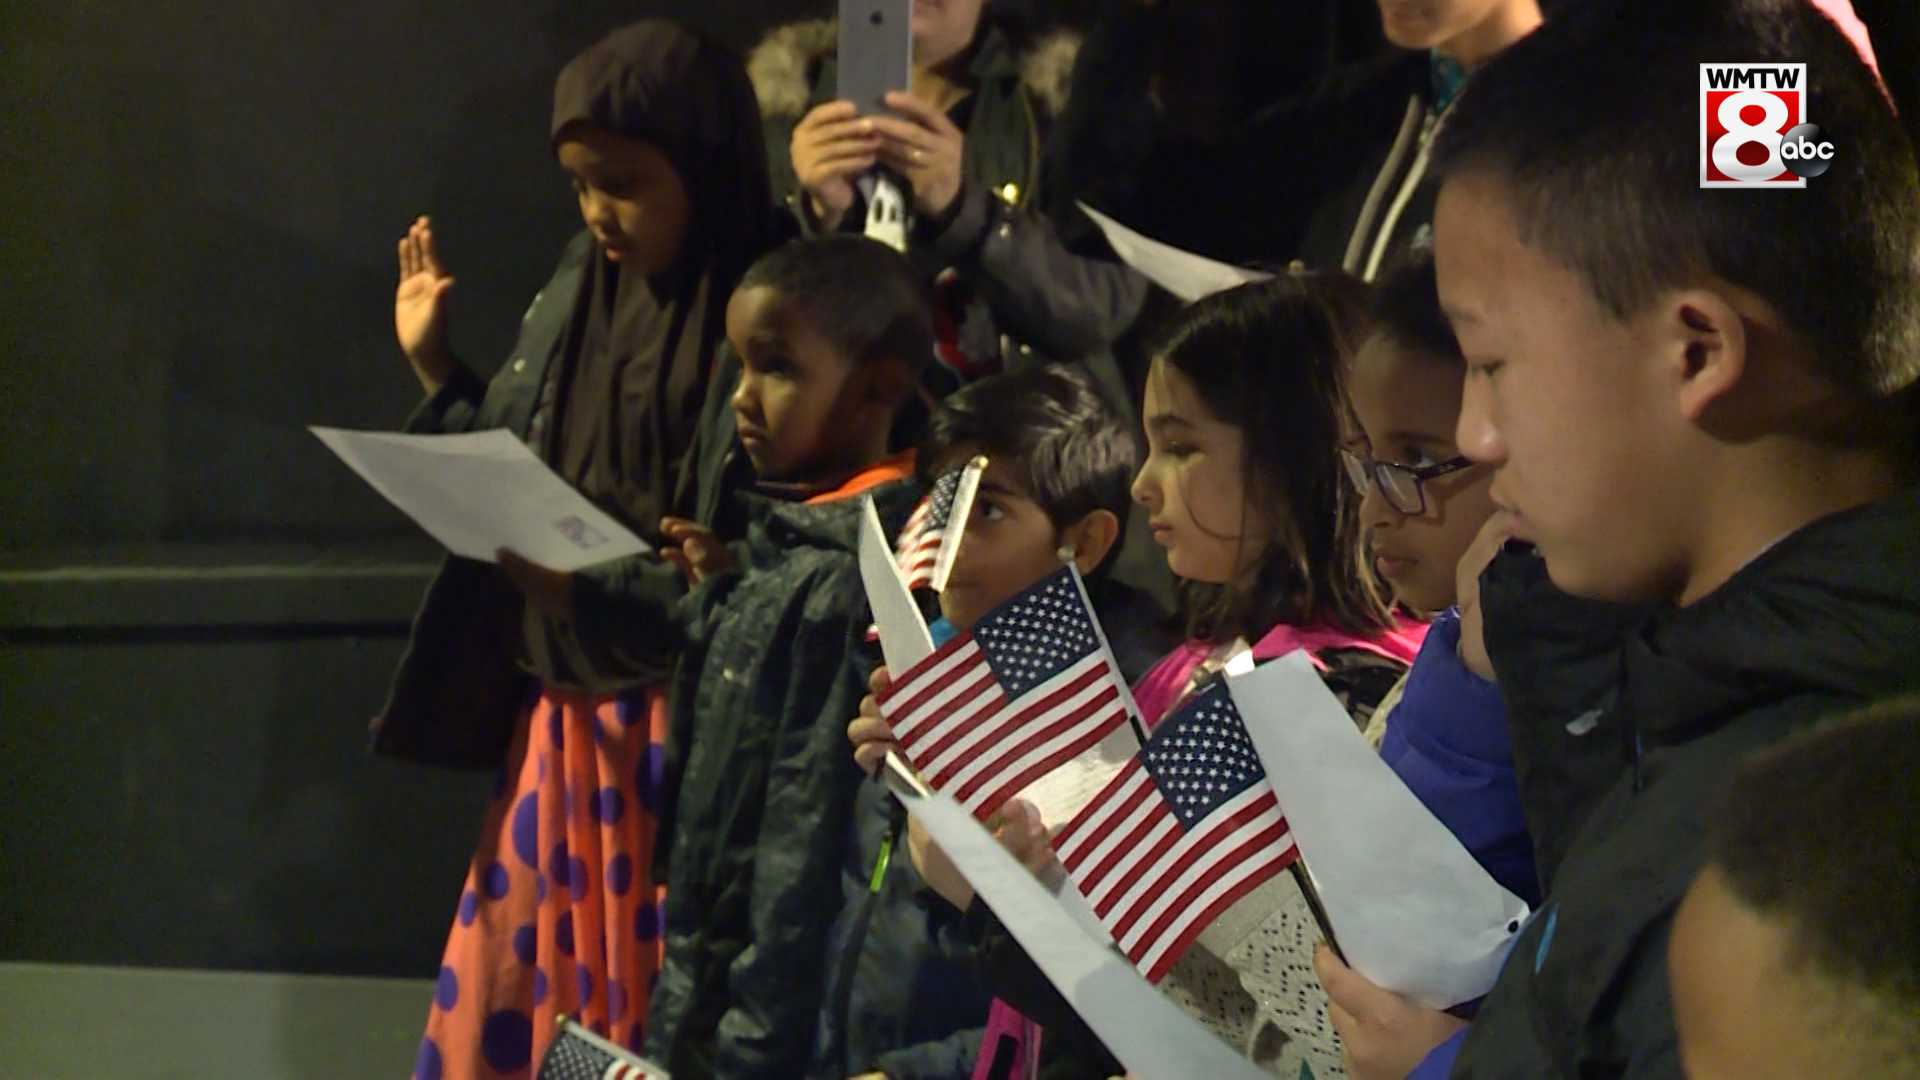 Nearly 30 children become U.S. citizens in special ceremony